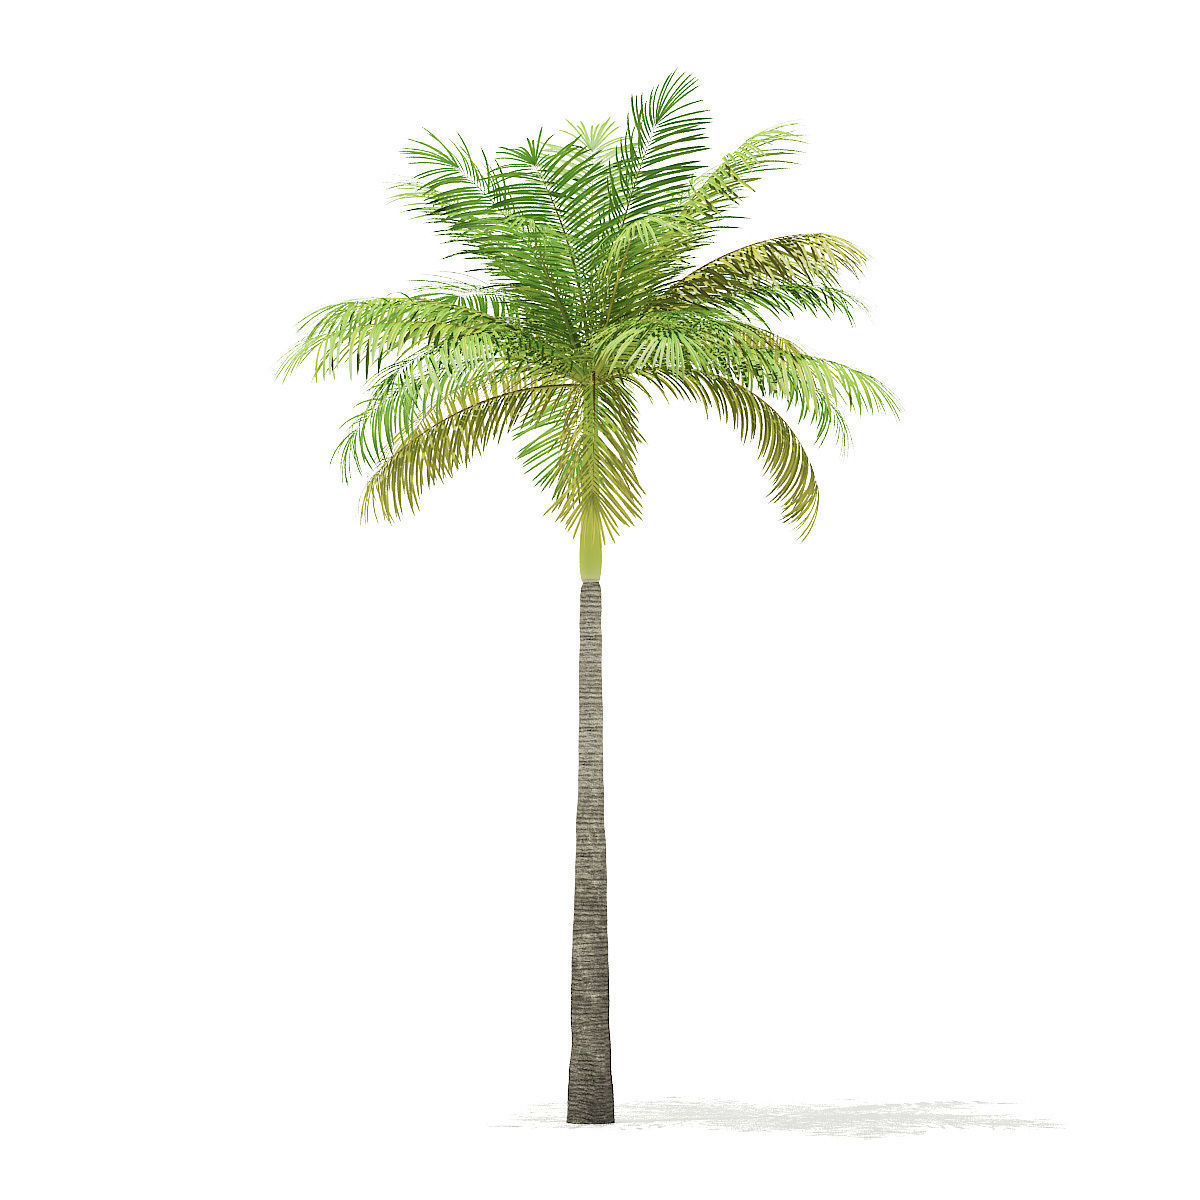 Bottle Palm Tree 3D Model 6m | 3D model